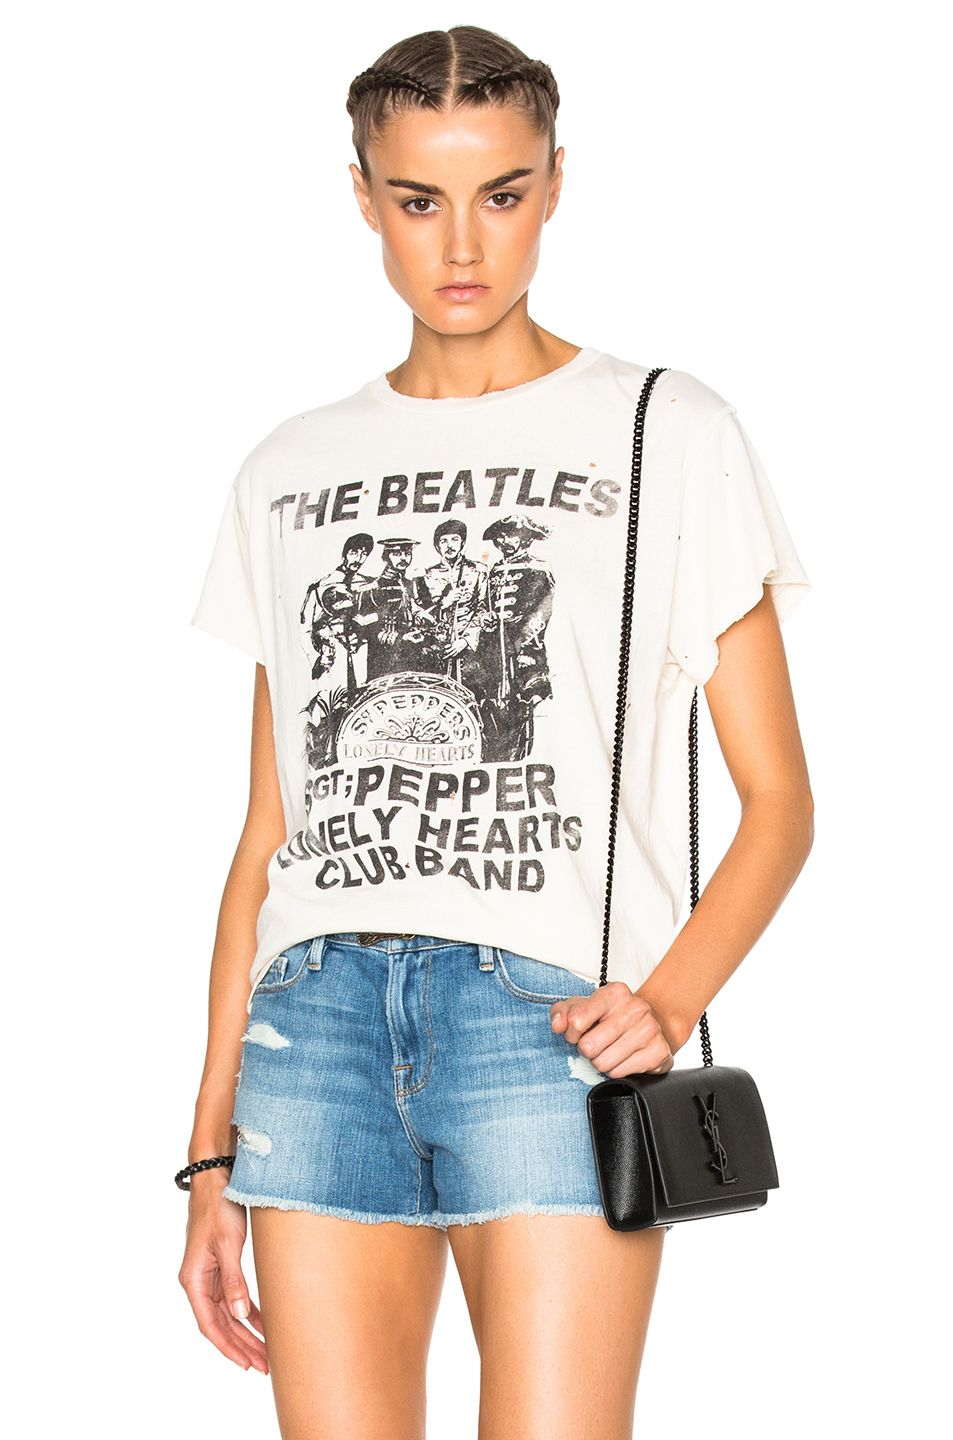 9a0697eef20b Image 1 of Madeworn The Beatles Tee in Dirty White   Wants   Band ...